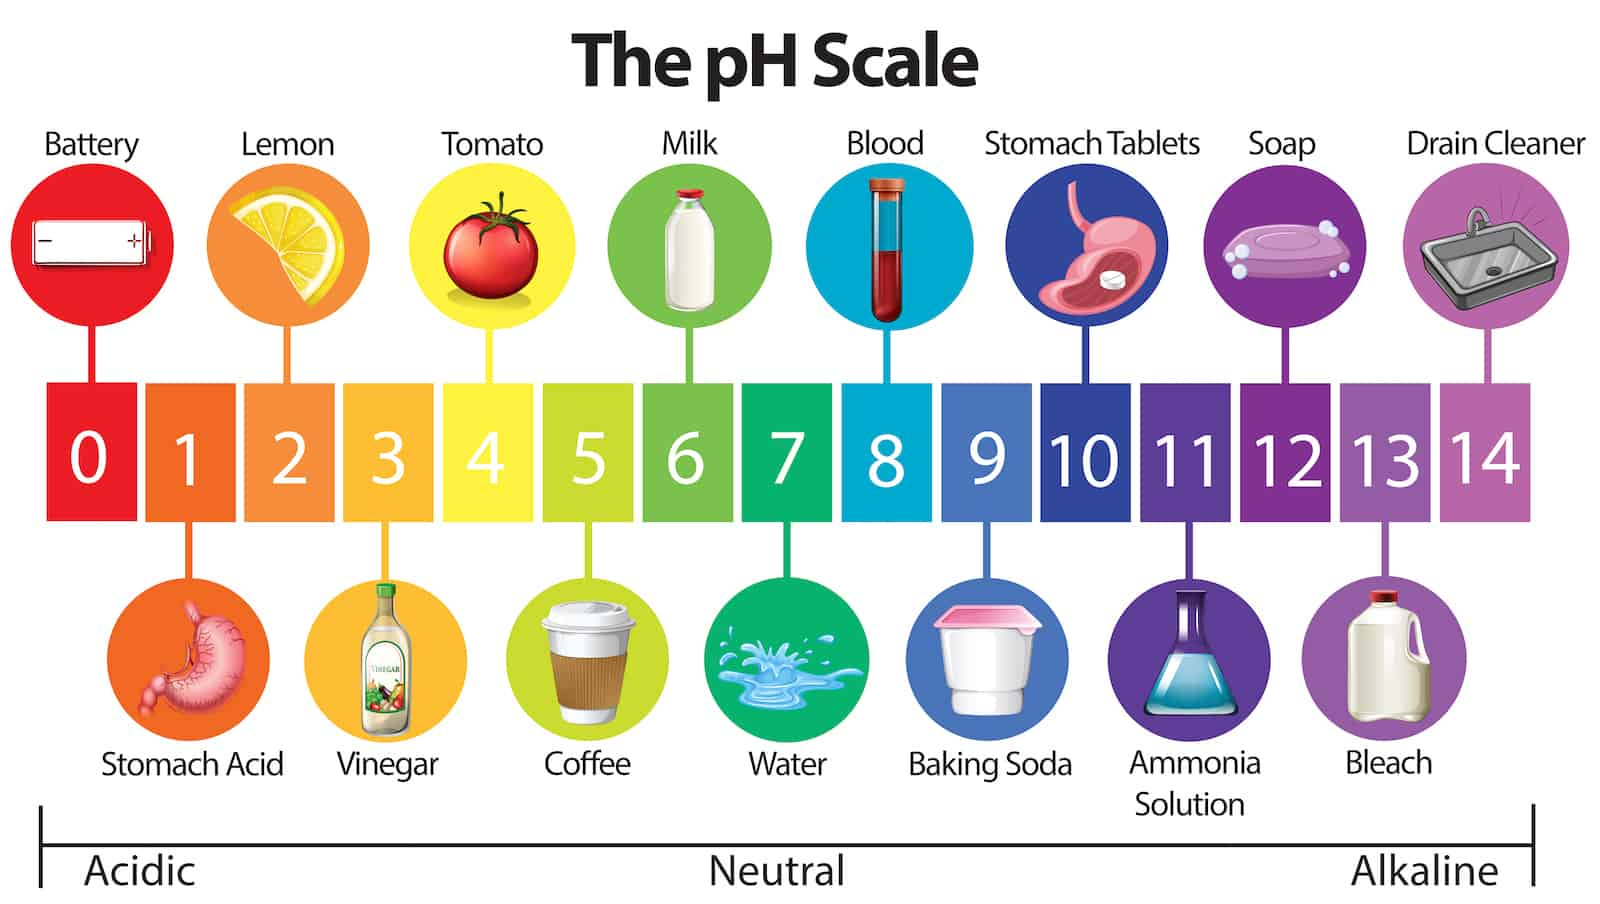 The pH scale runs from zero to 14 (but there are substances outside of this scale as well)